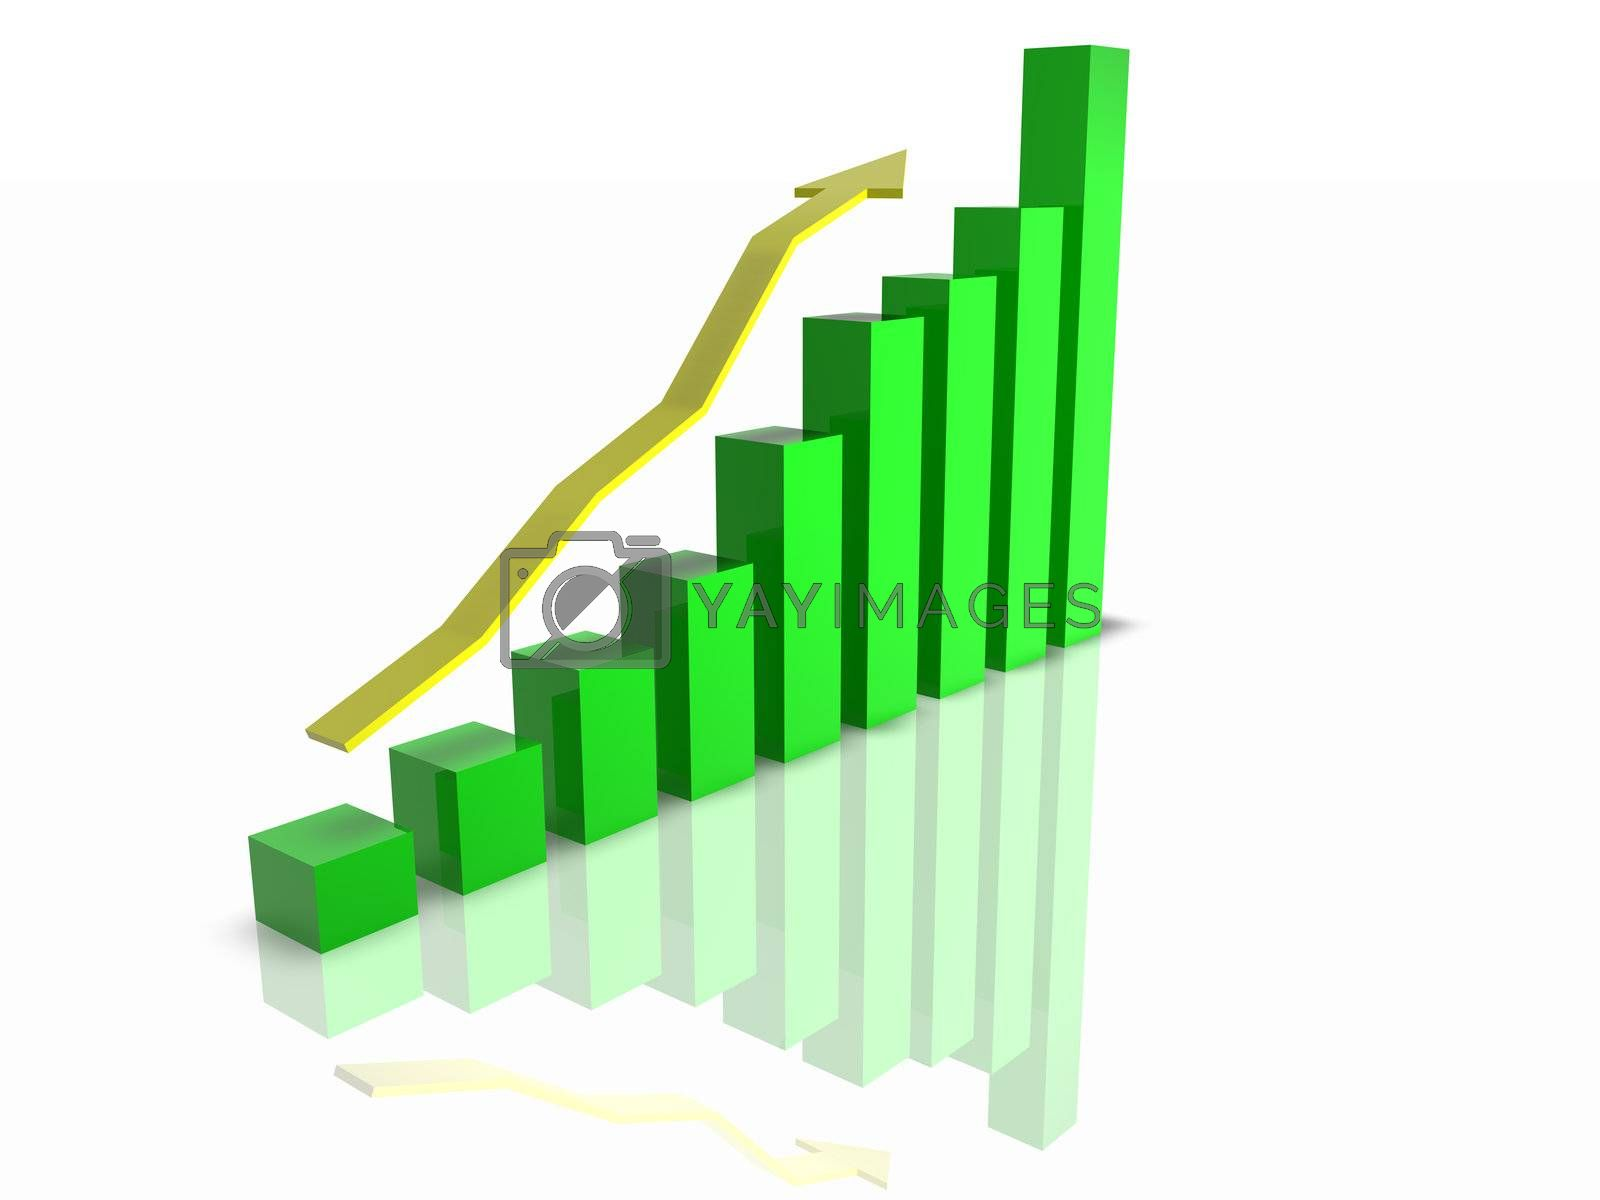 3D Render of a bar chart on white background showing growth.